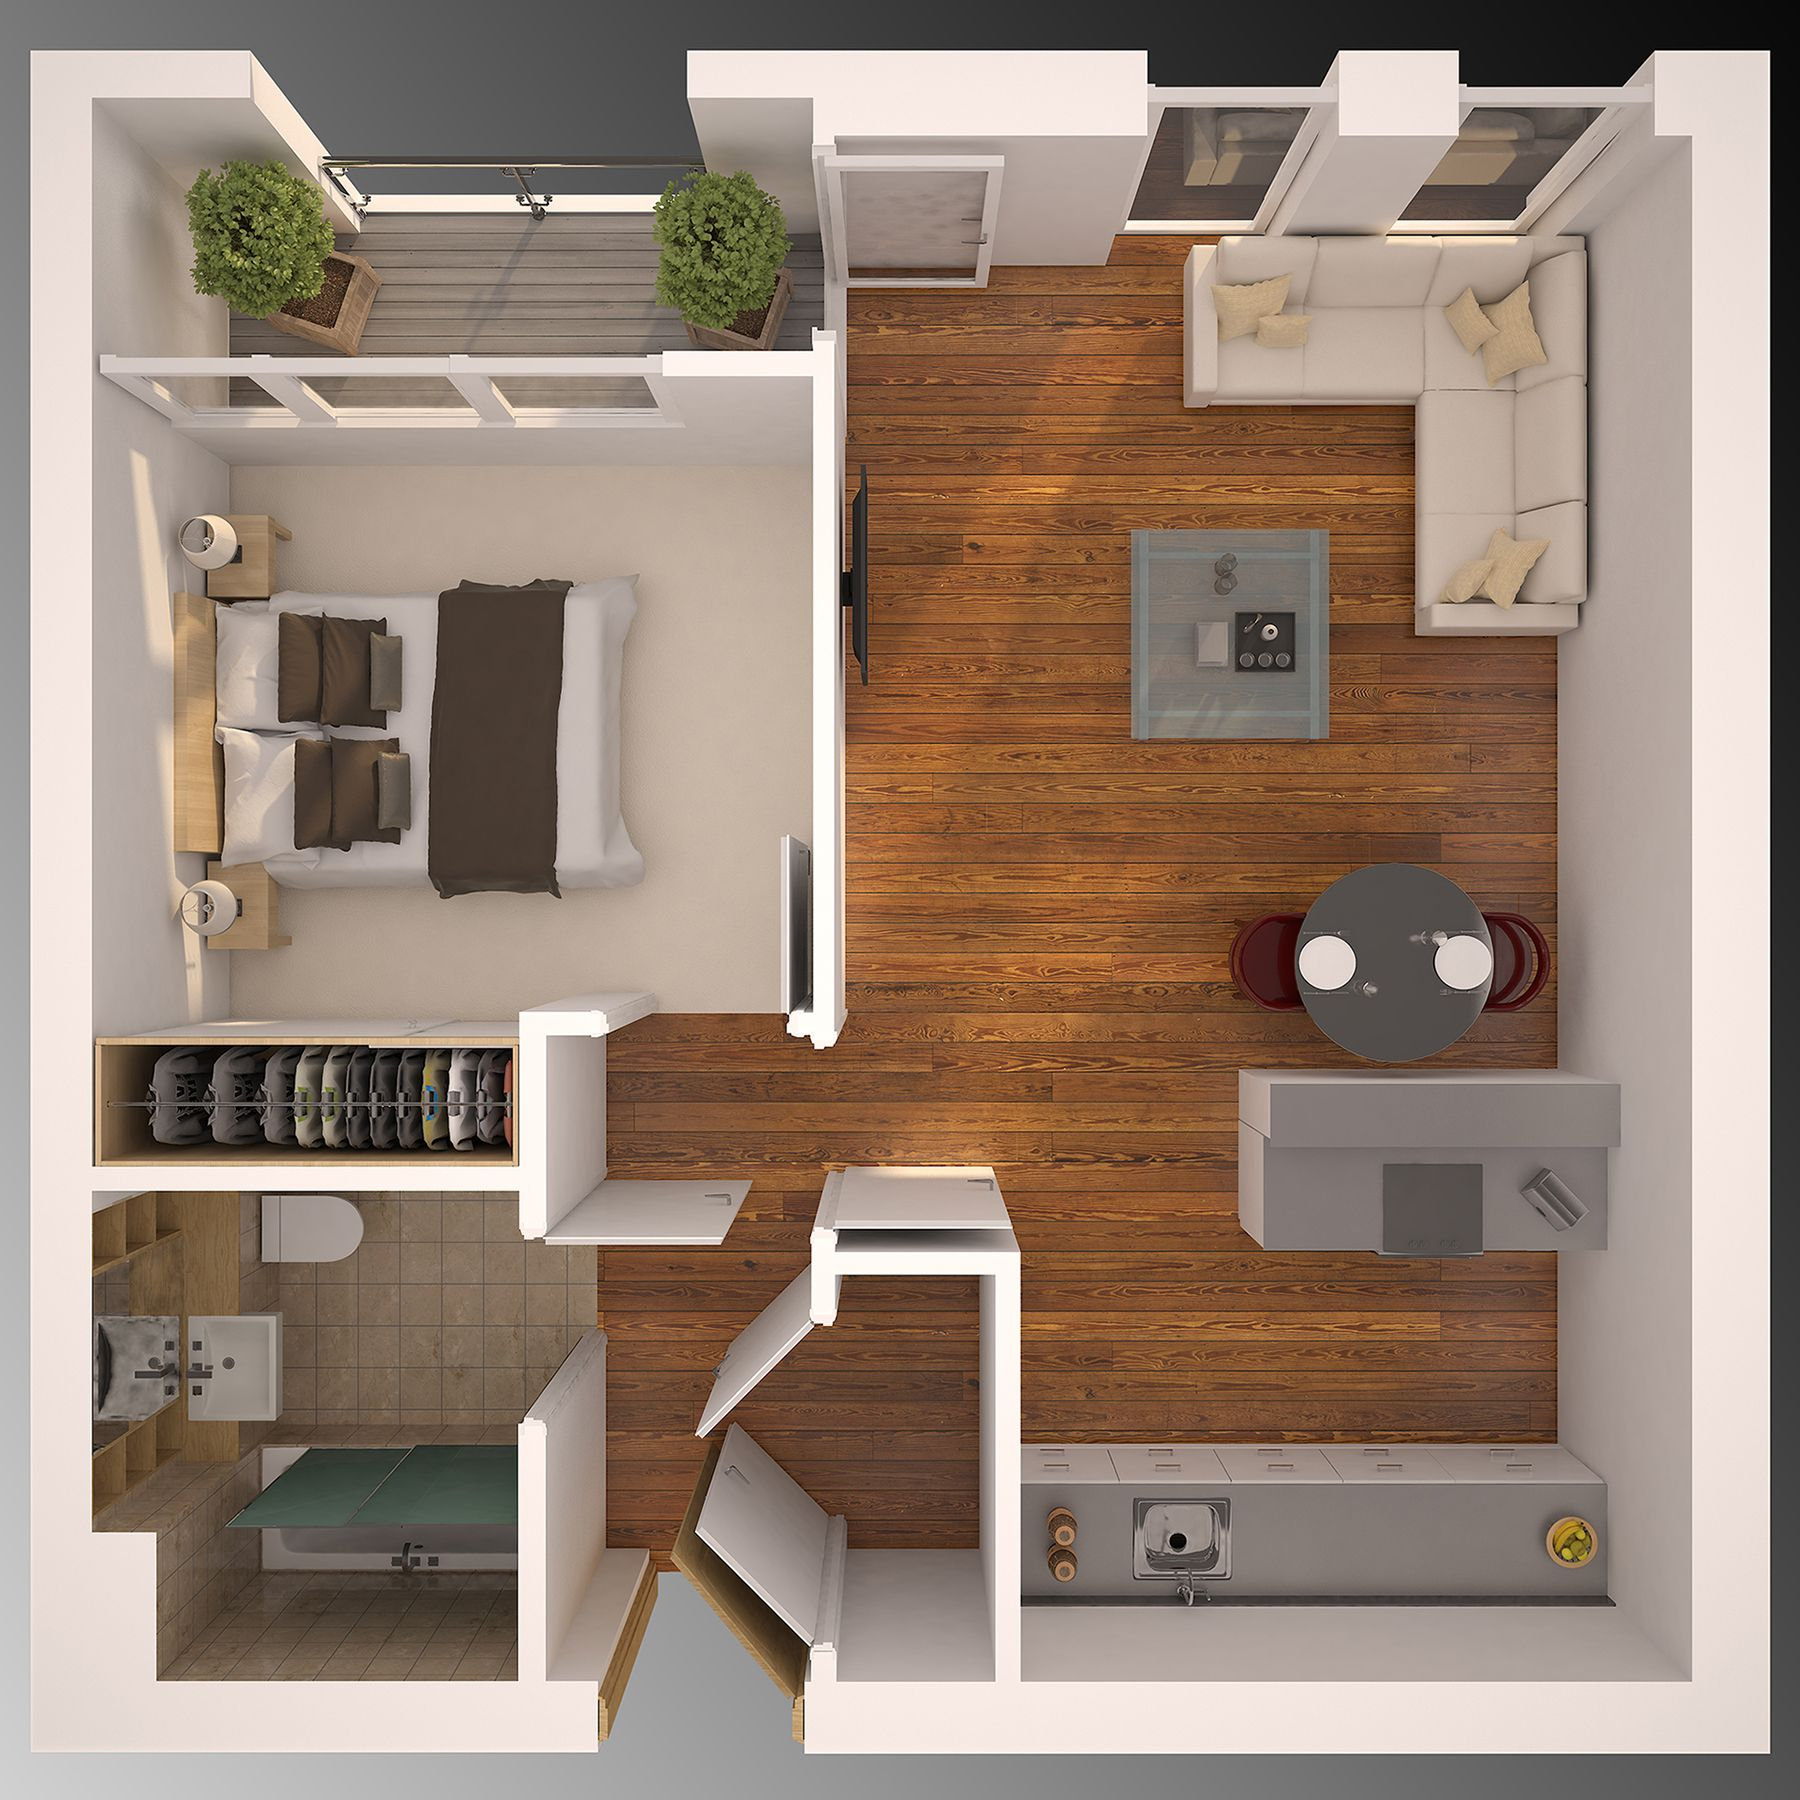 3D Floor Plan Vray 3ds Max Affter Effect And Photoshop Together